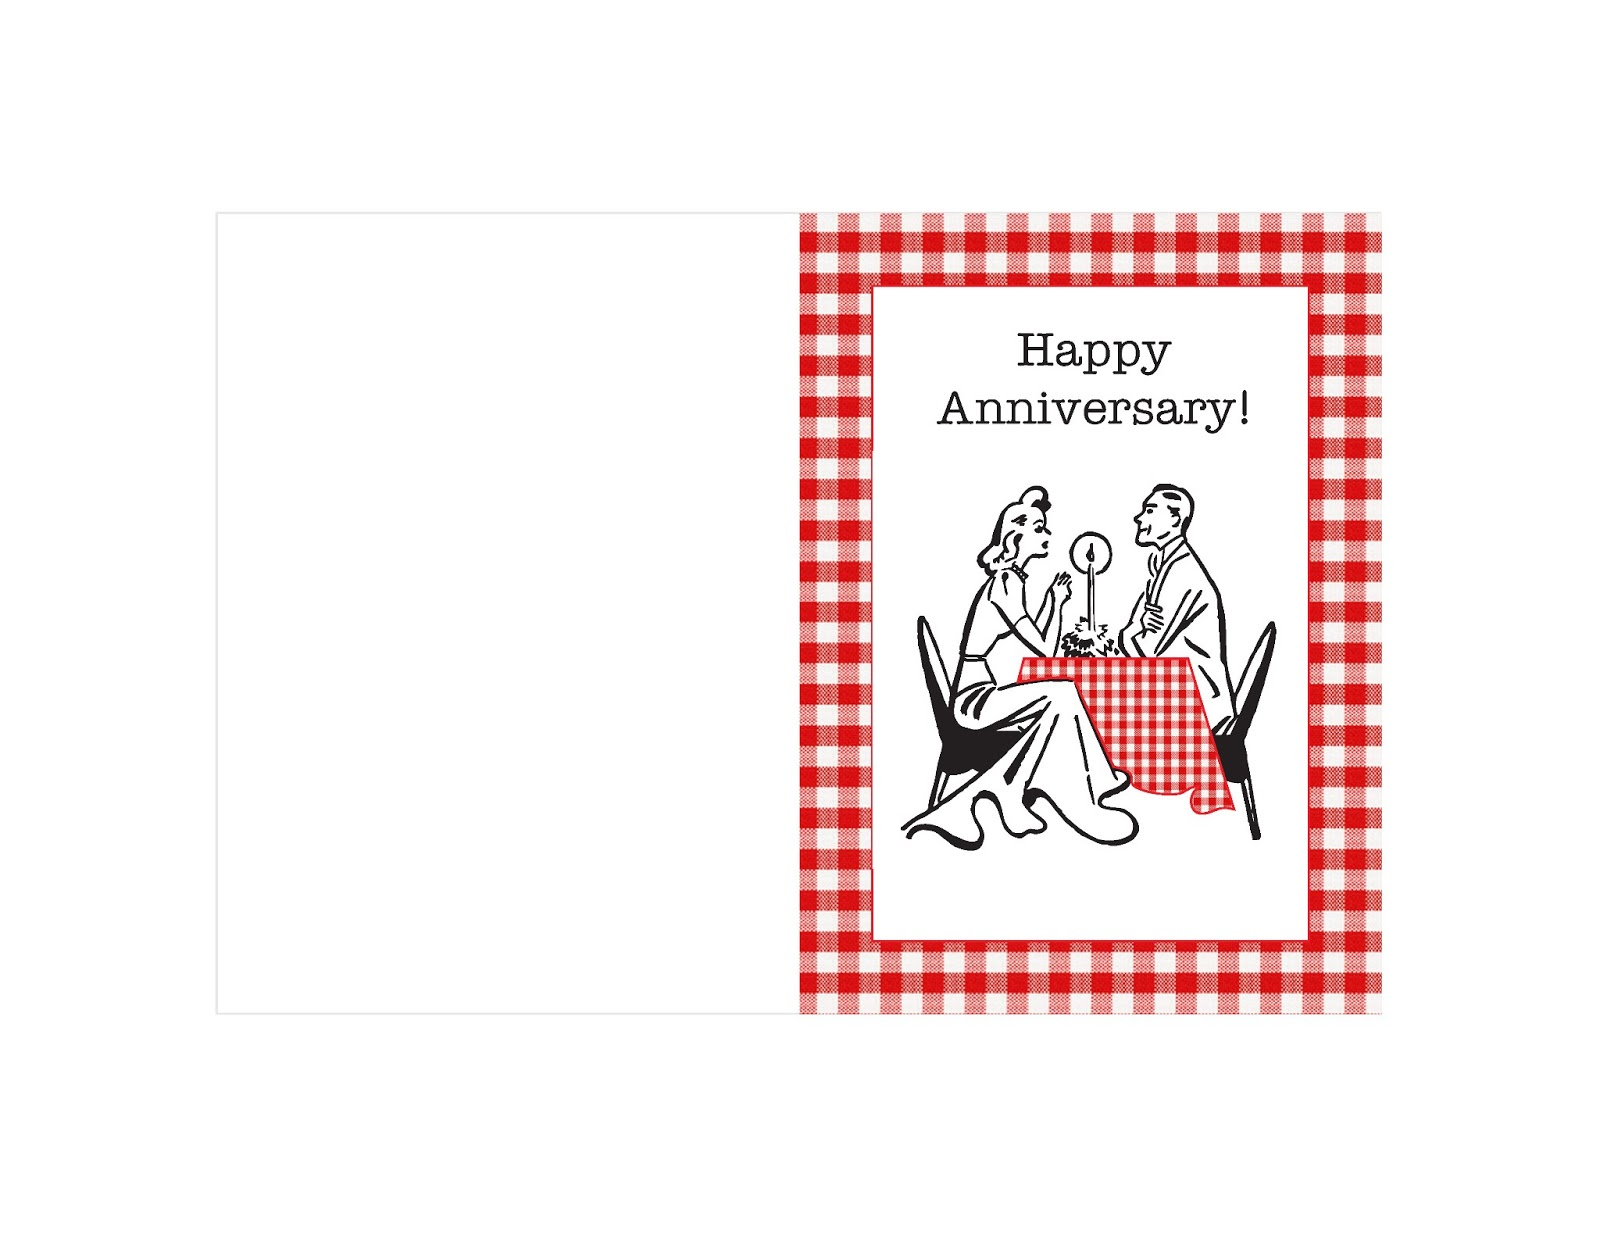 30 Free Printable Anniversary Cards | Kittybabylove - Free Printable Anniversary Cards